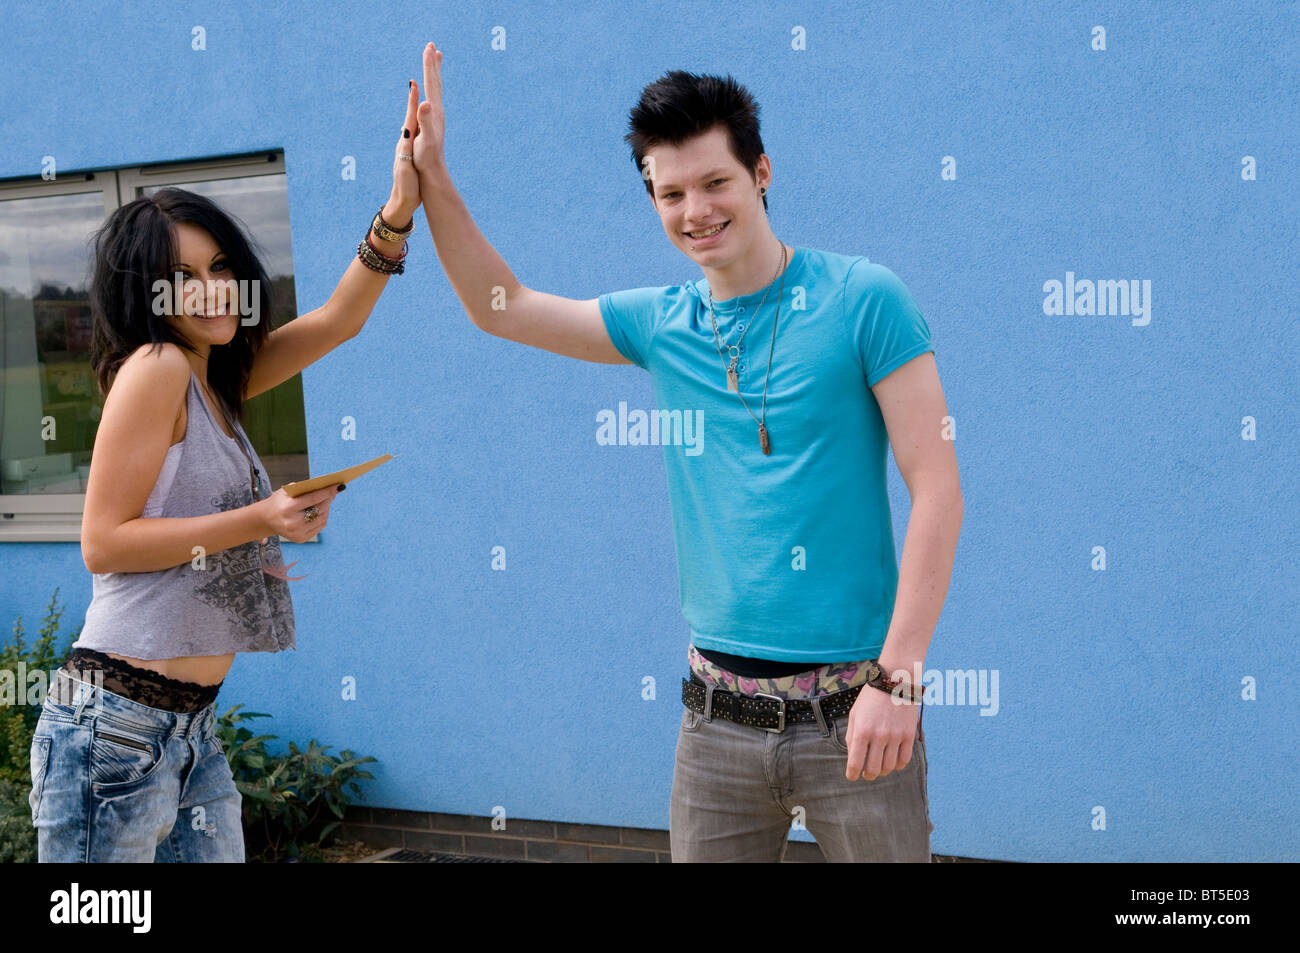 Happy teenagers outside school doing a high five after opening exam results - Stock Image